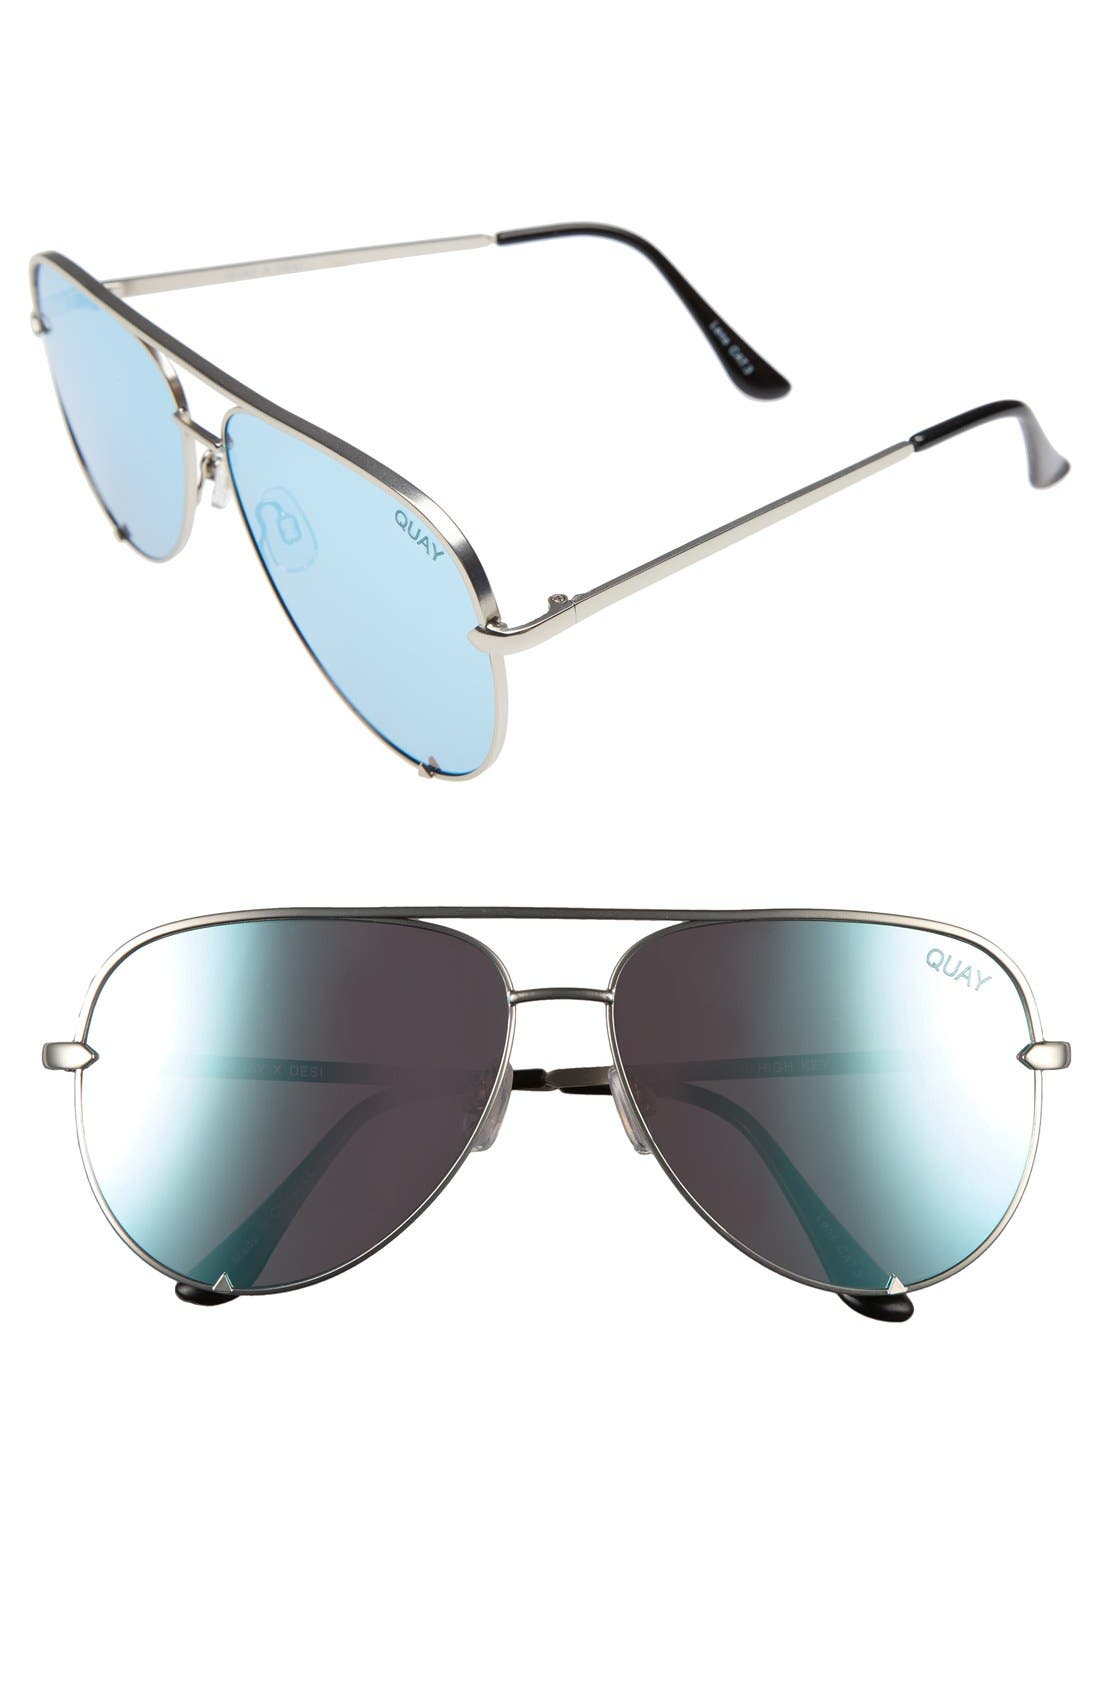 x Desi Perkins High Key 62mm Aviator Sunglasses,                             Main thumbnail 1, color,                             Silver/ Blue